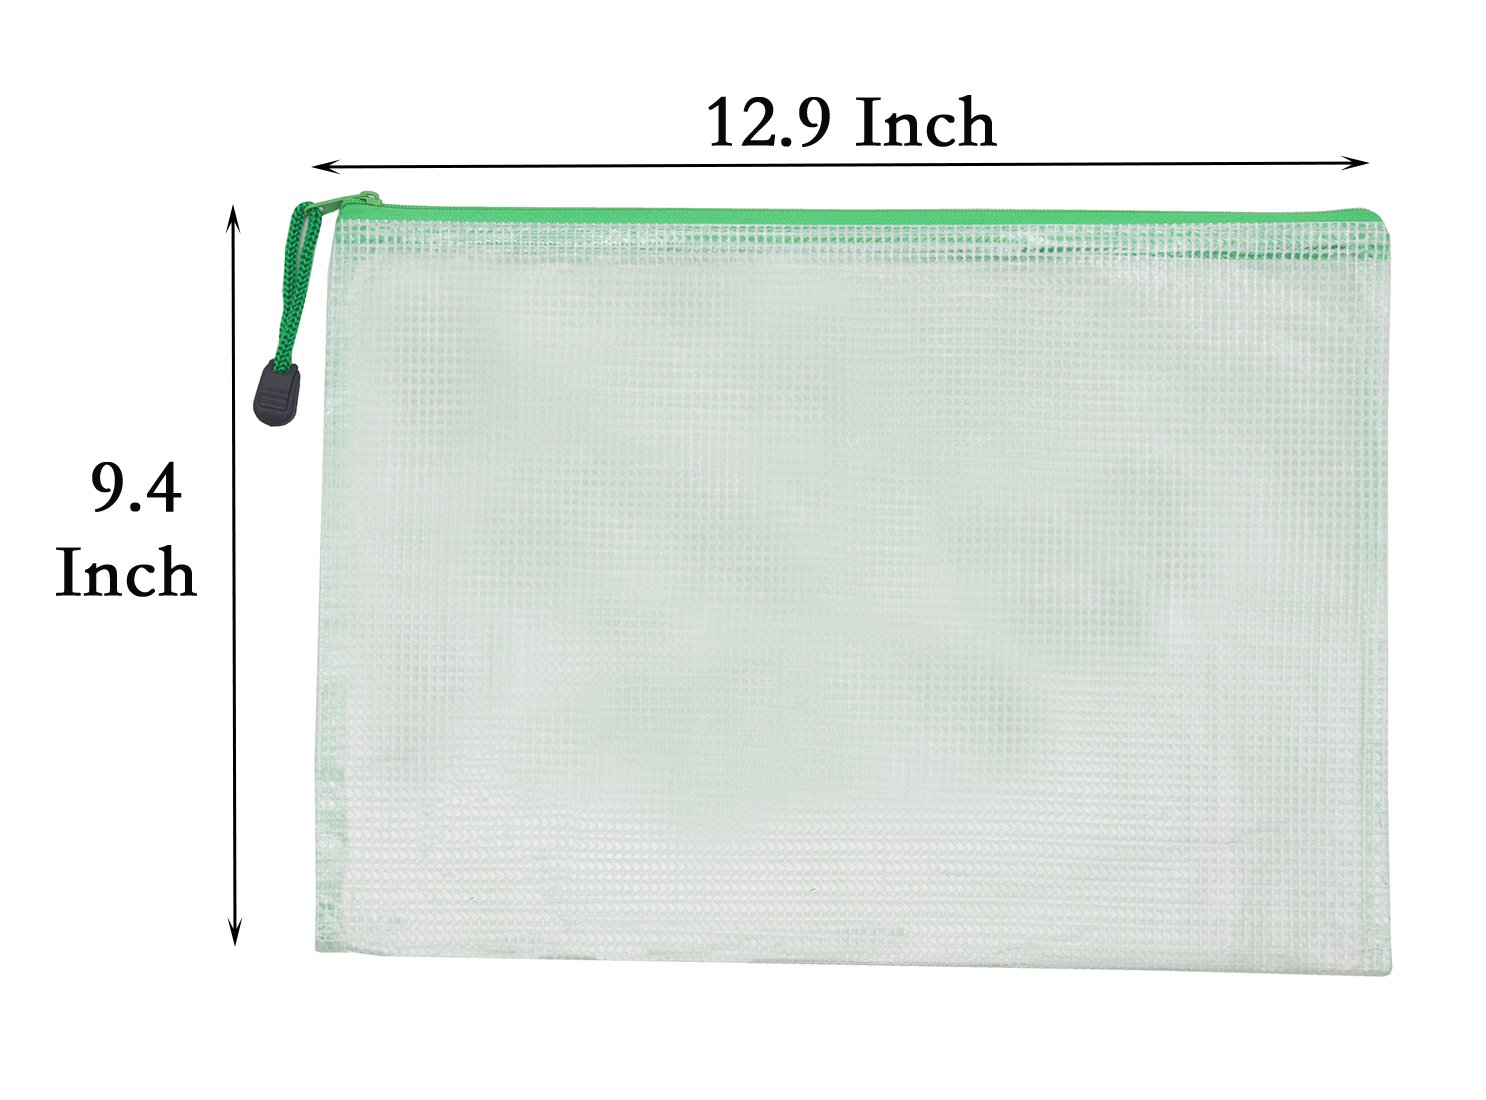 Zipper File Bags Mesh Zipper Bag Document Pouches Waterproof Poly Envelope Travel Pouch Plastic File folder Organizer Office Documents Bag A4 Paper Size Plastic with Zipper Closure -12 Pcs (Green) by SLanC (Image #2)